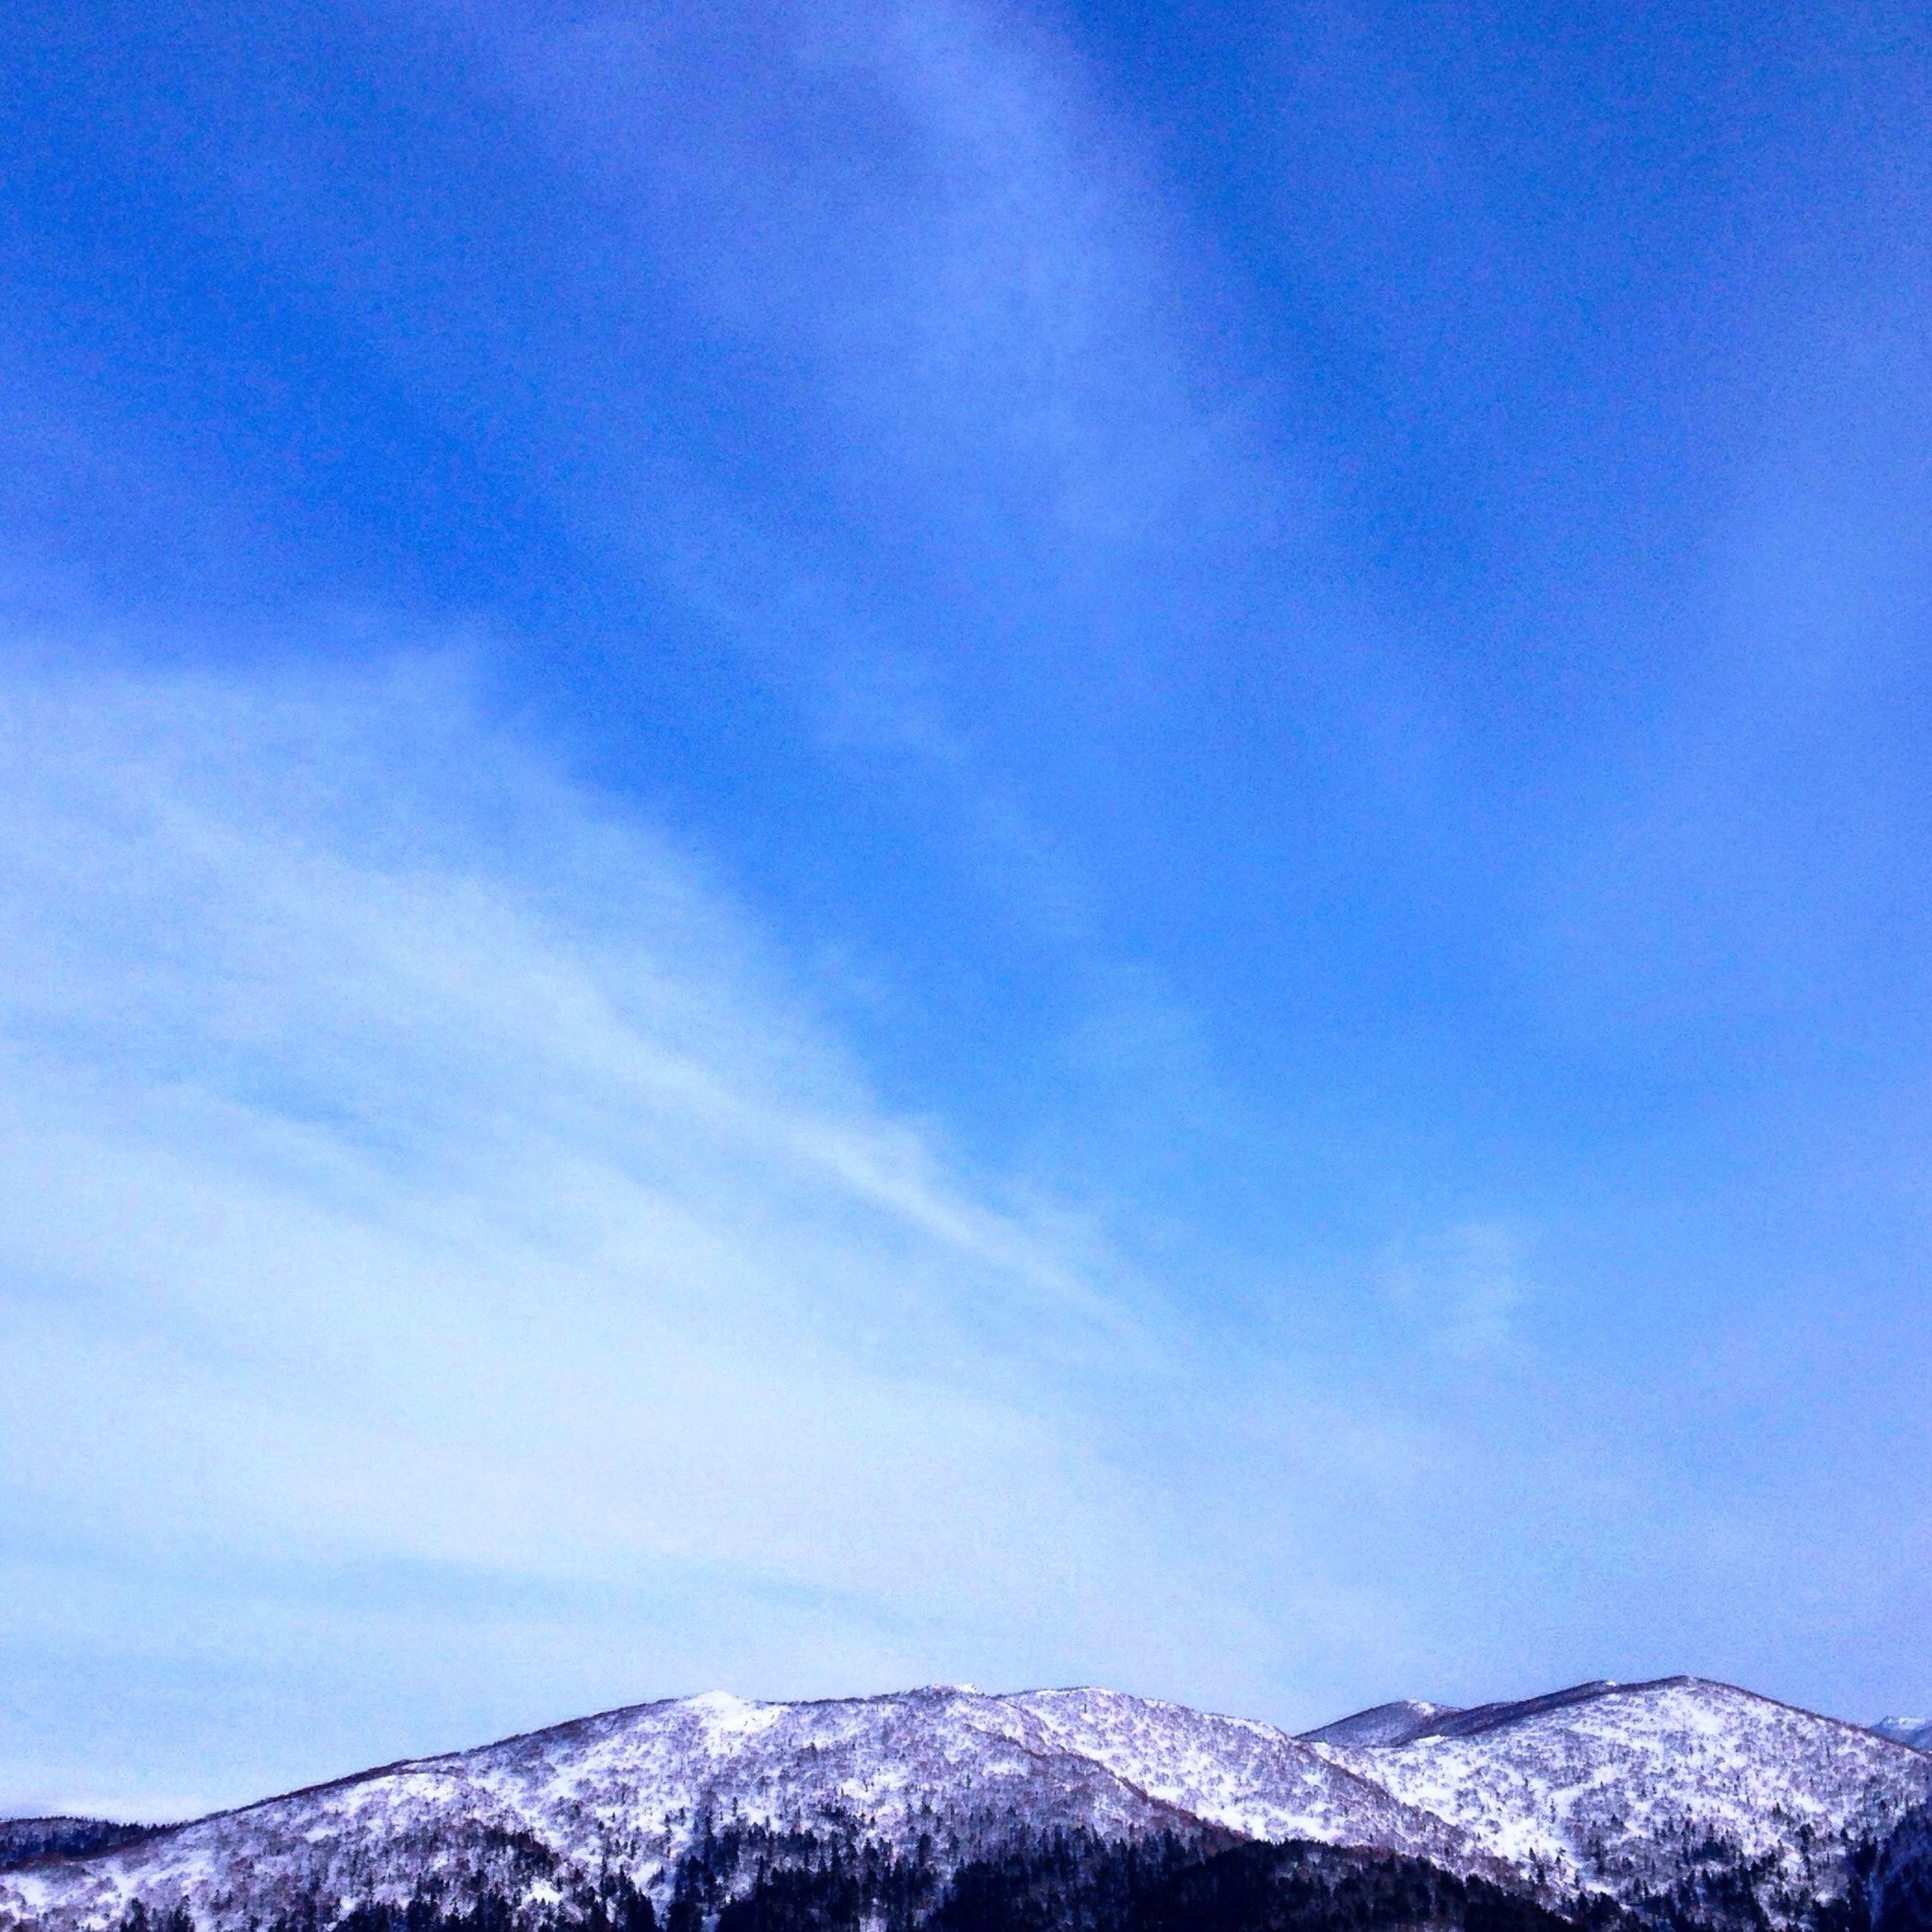 snow, sky, winter, blue, nature, cold temperature, mountain, beauty in nature, tranquility, low angle view, scenics, outdoors, cloud - sky, day, no people, tree